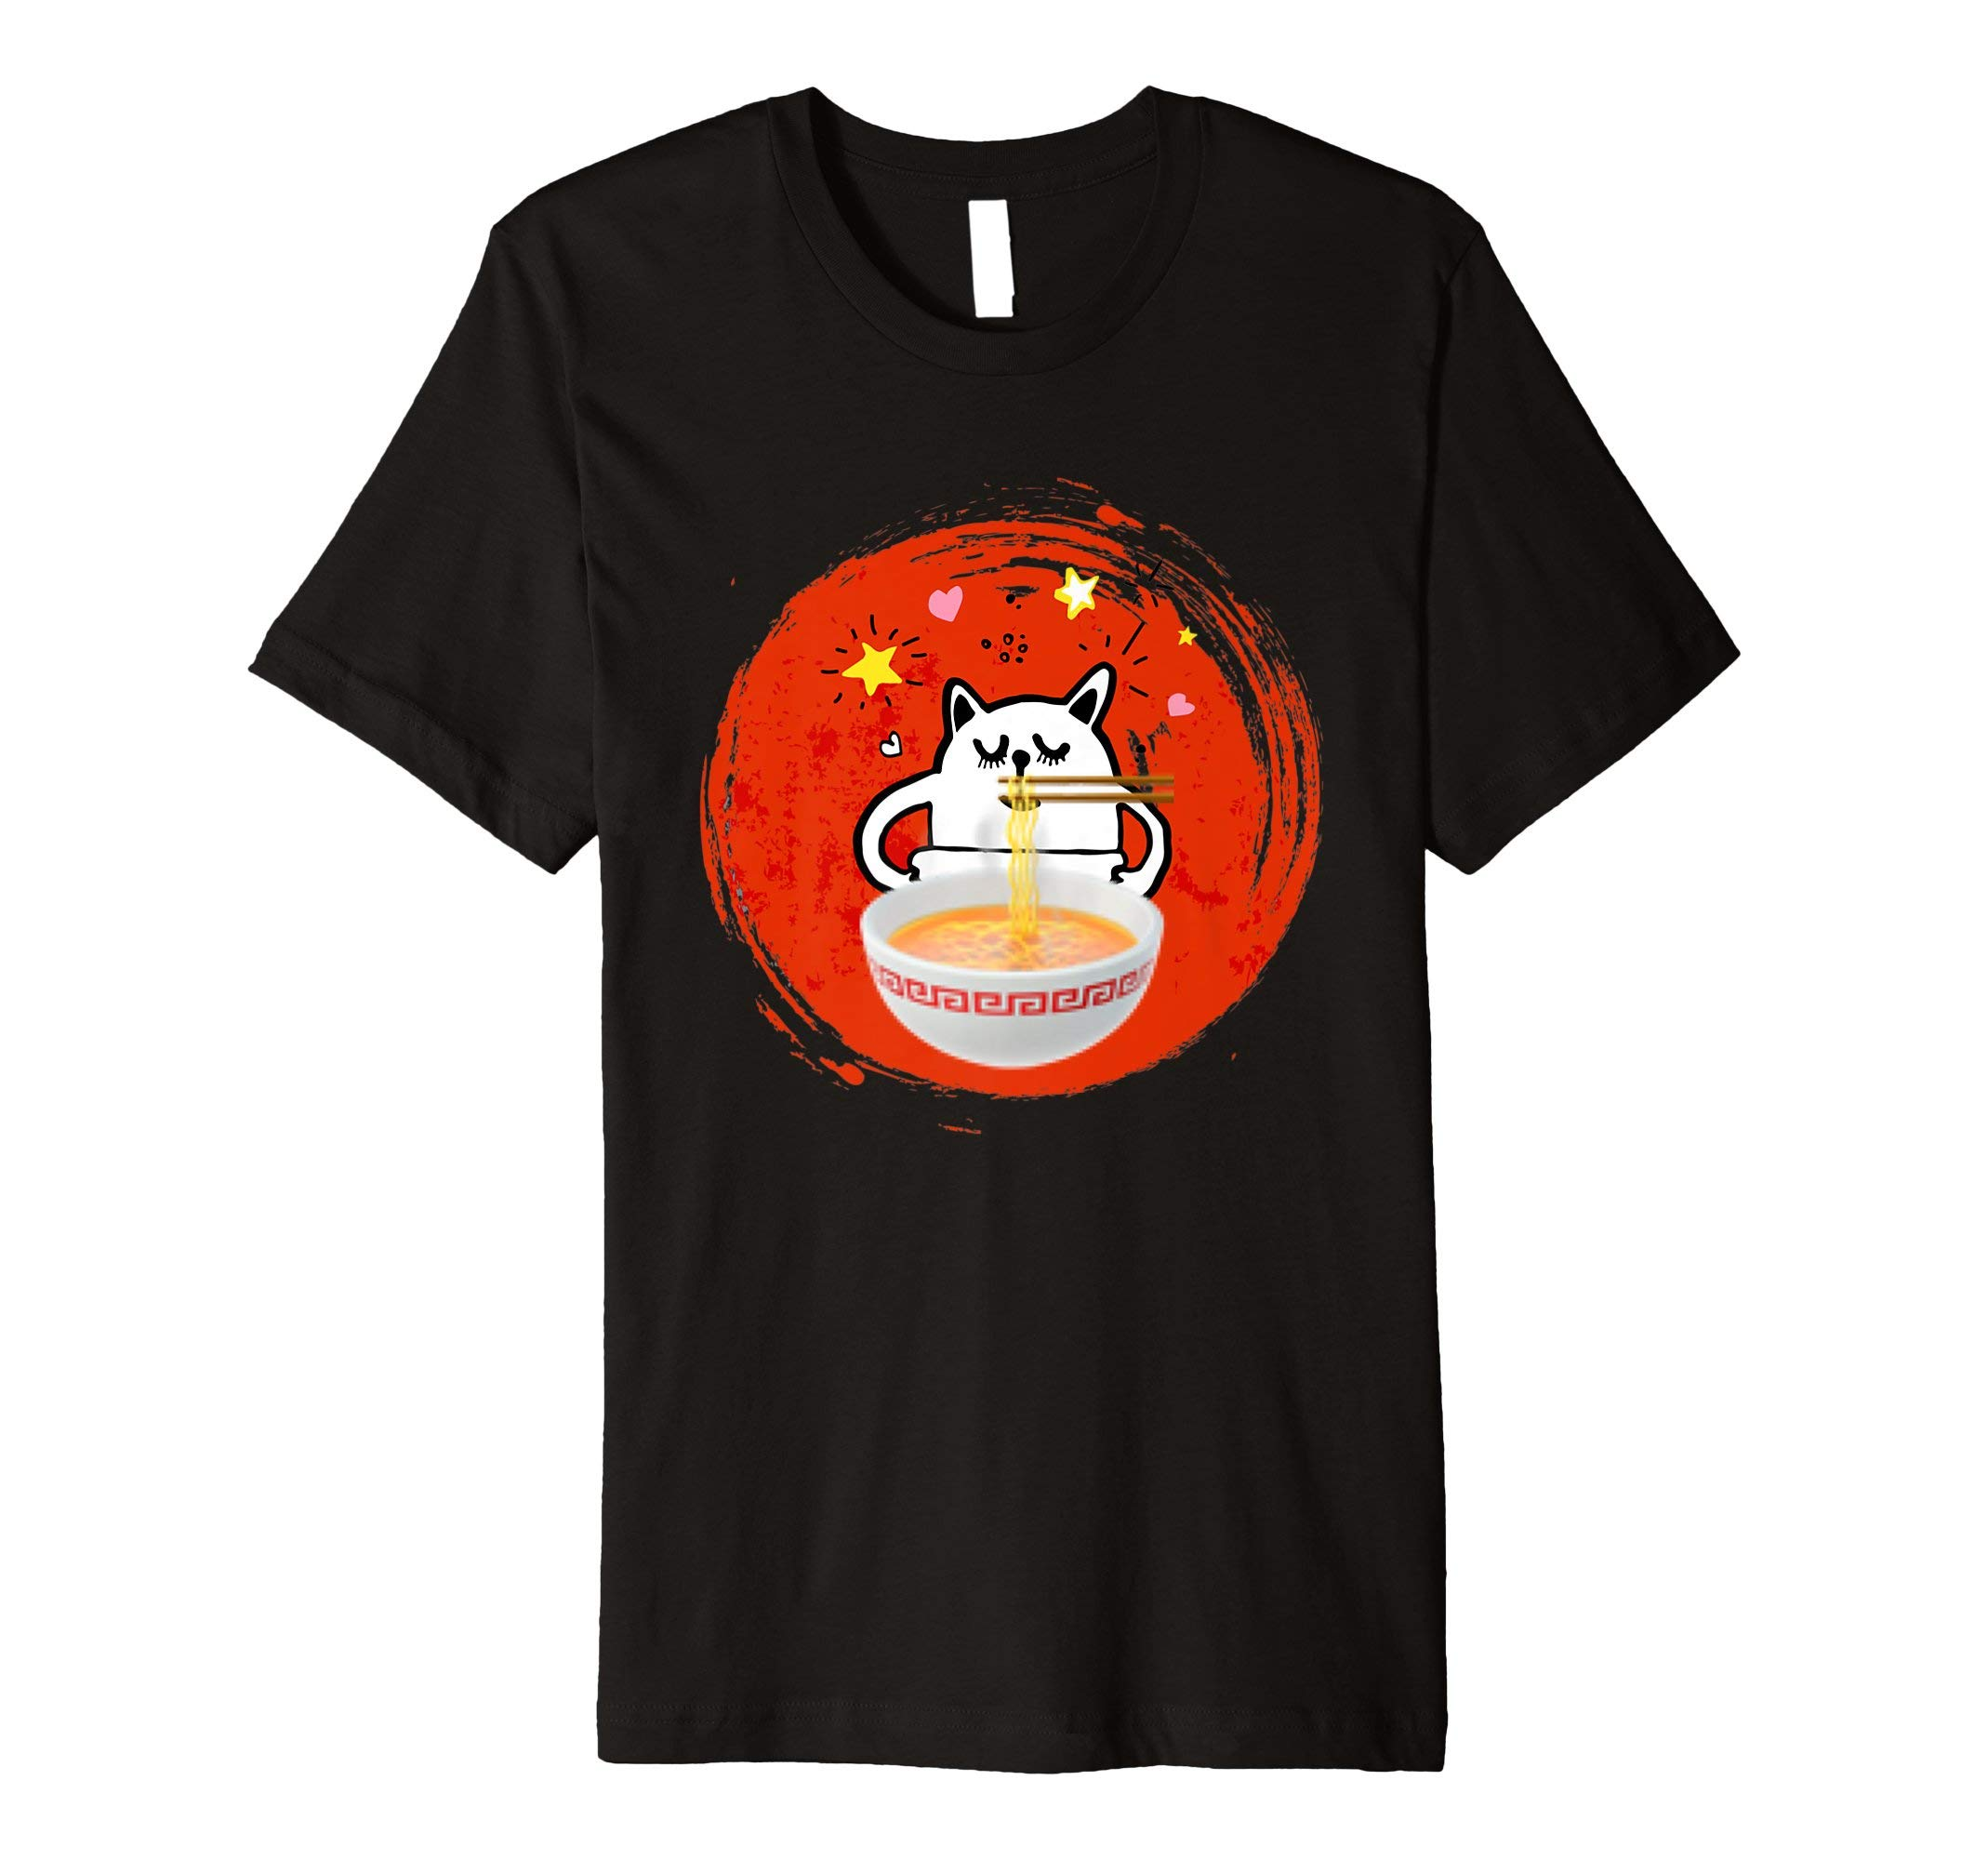 Kawaii Anime Cat & Ramen Noodle Funny Gift T Shirt